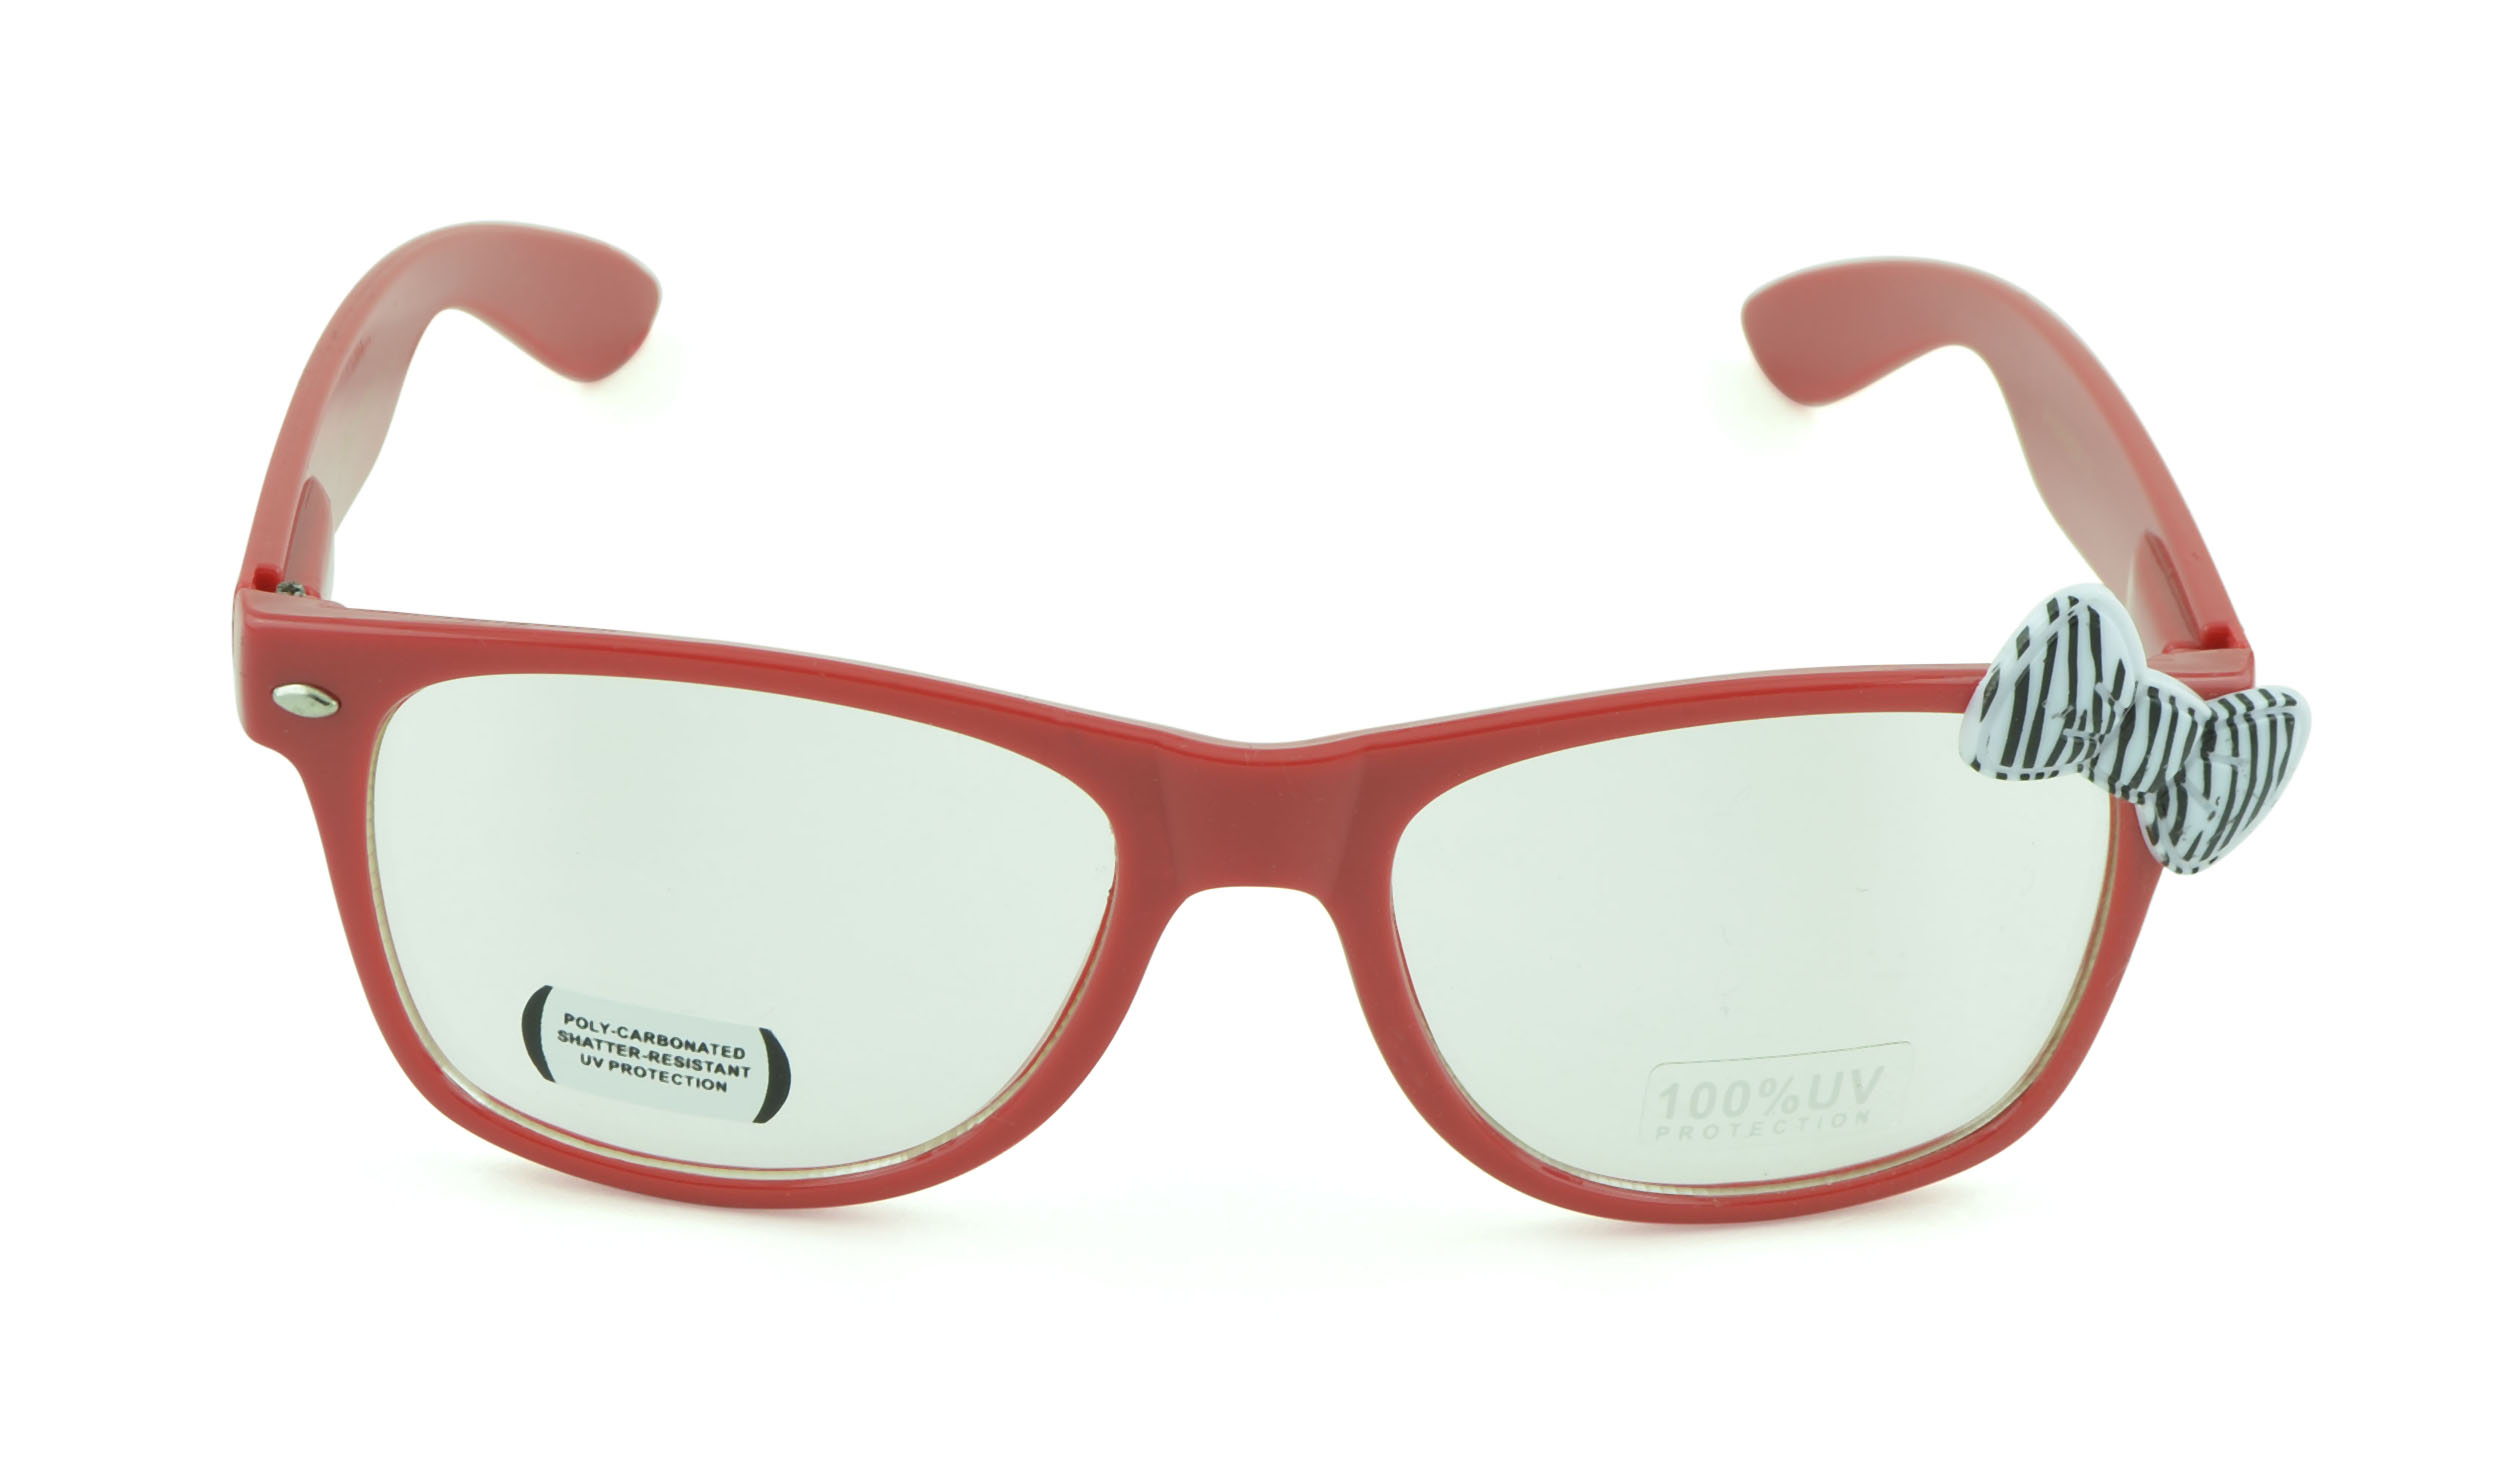 Belle Donne-Women's Kitty Cat Style Sunglasses | Whiskers and Bow Accent-Red